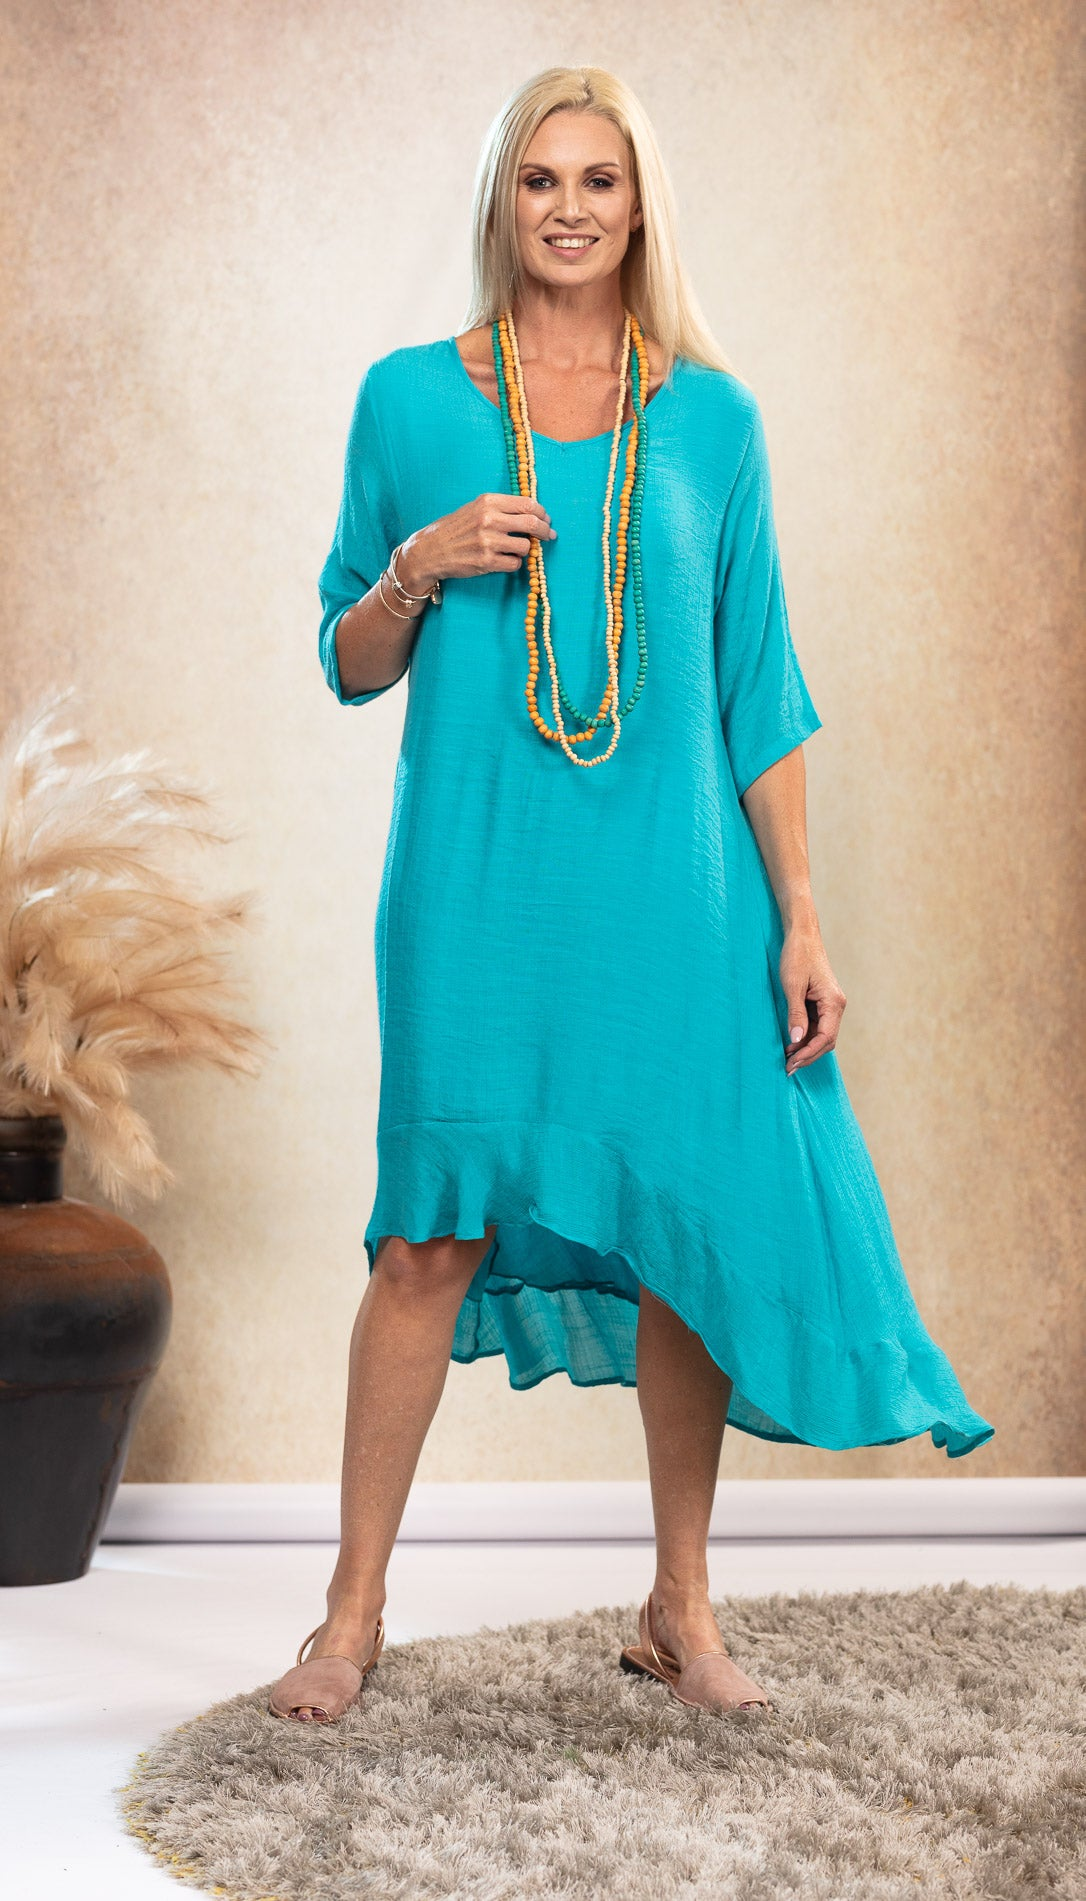 Bamboo Long Dress with sleeves. Aqua Turquoise. Natural nude Avarca sandals.